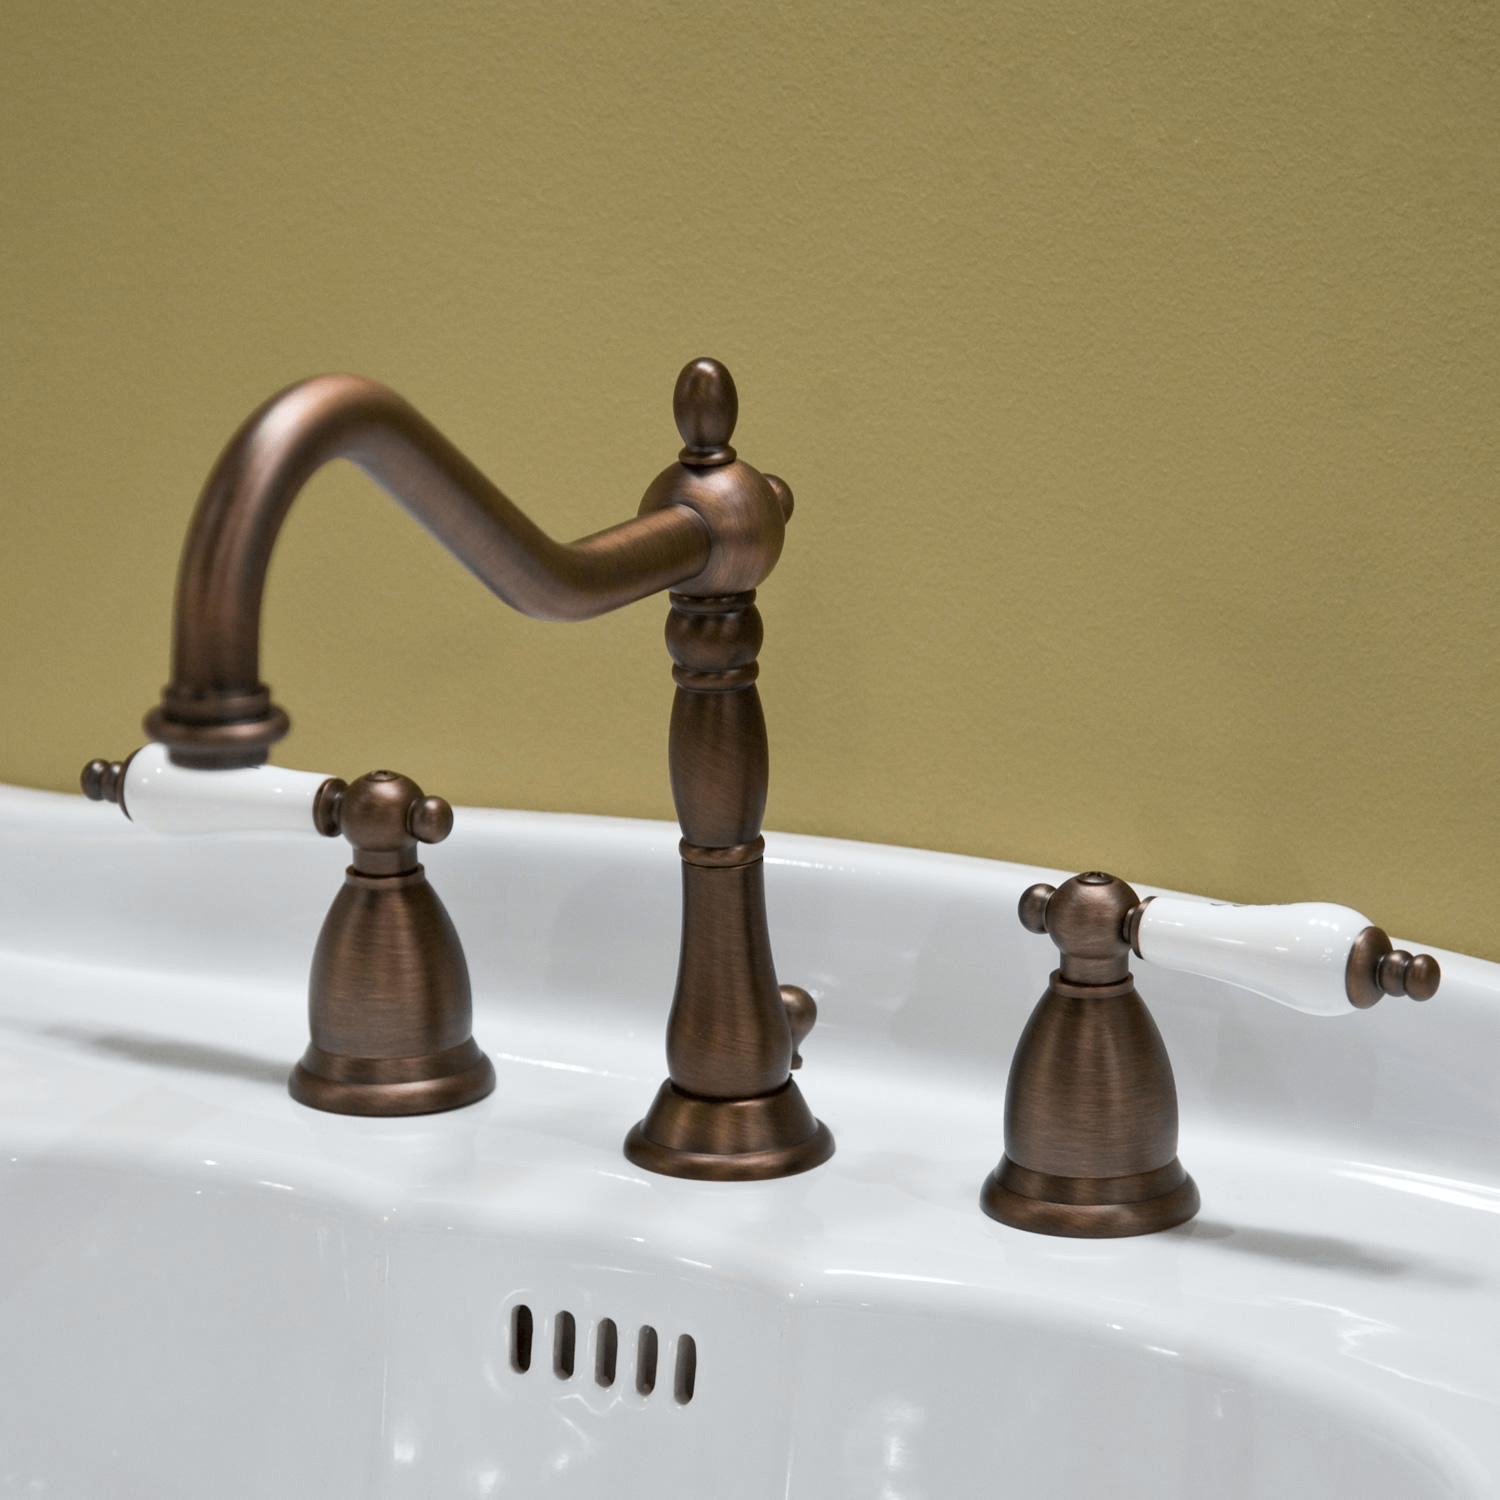 Bathroom Faucets Porcelain Handles Detail